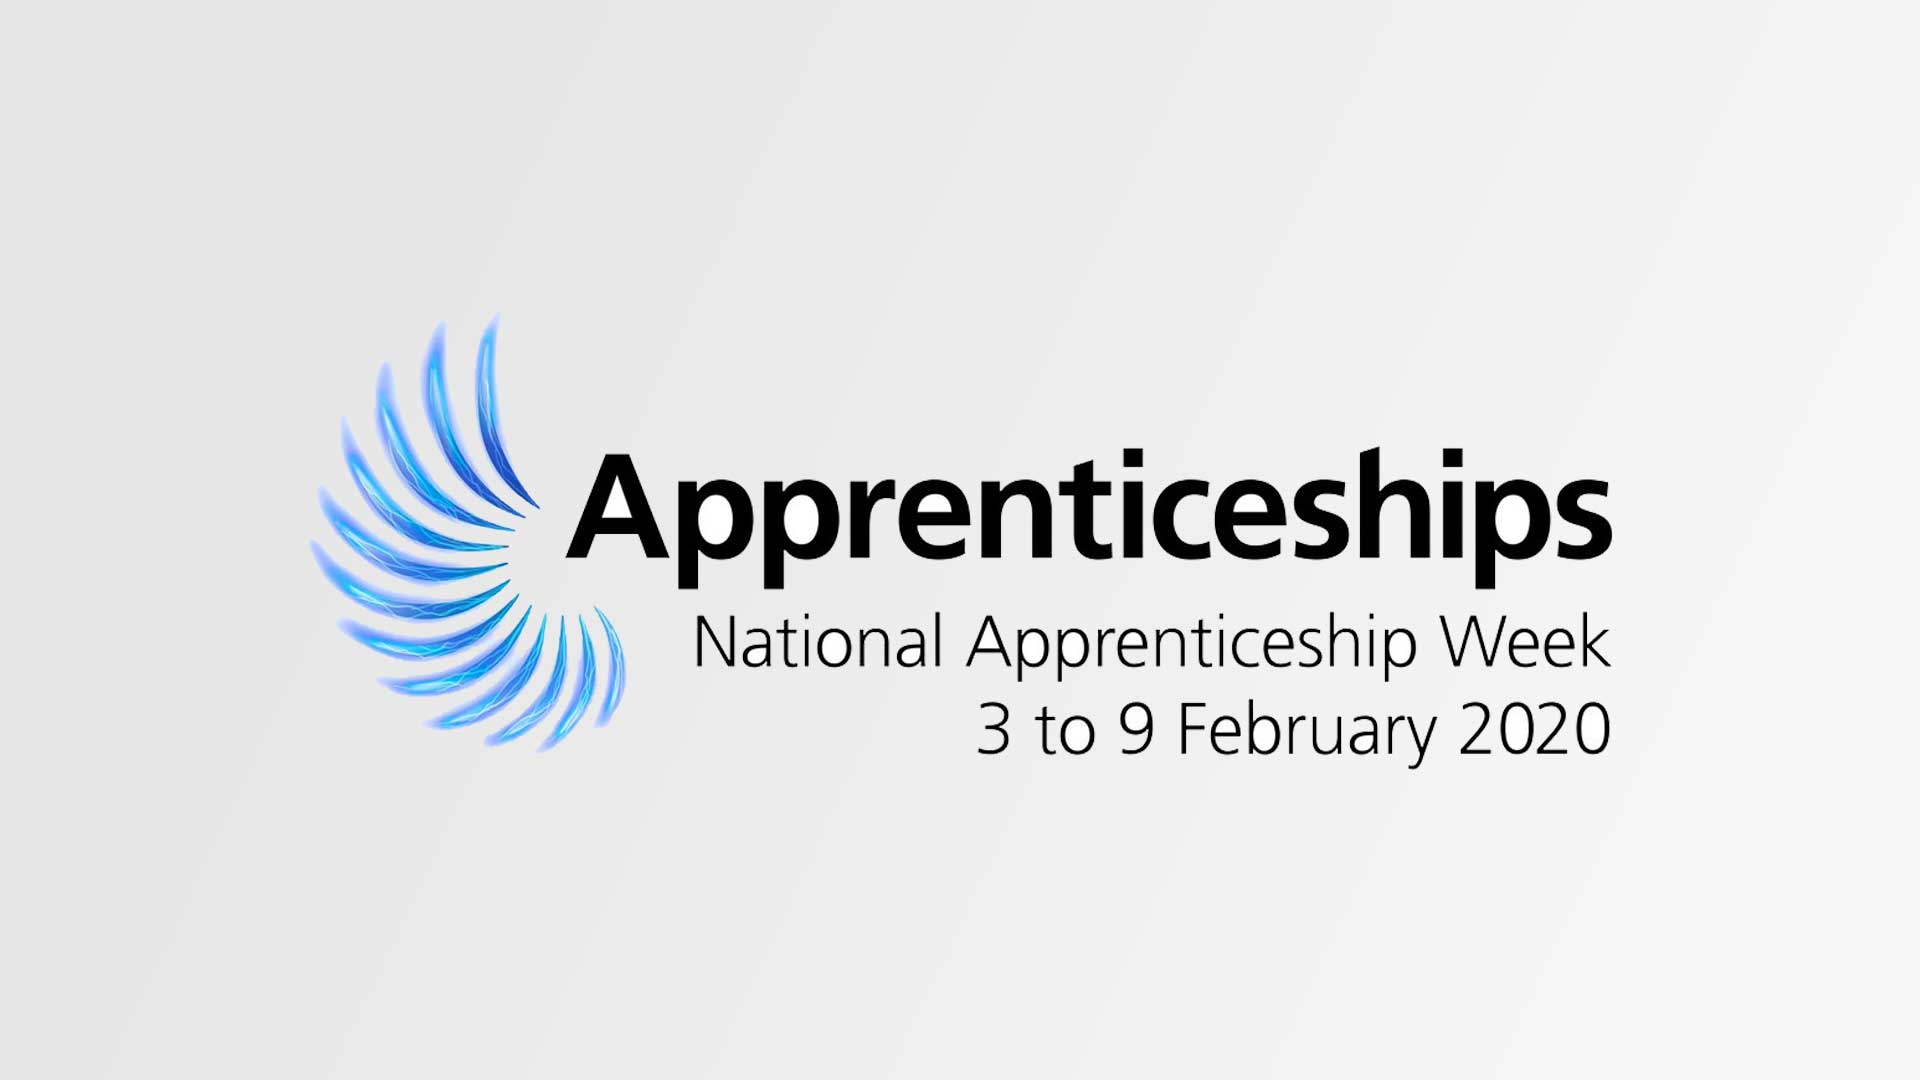 Nybble - National Apprenticeship Week